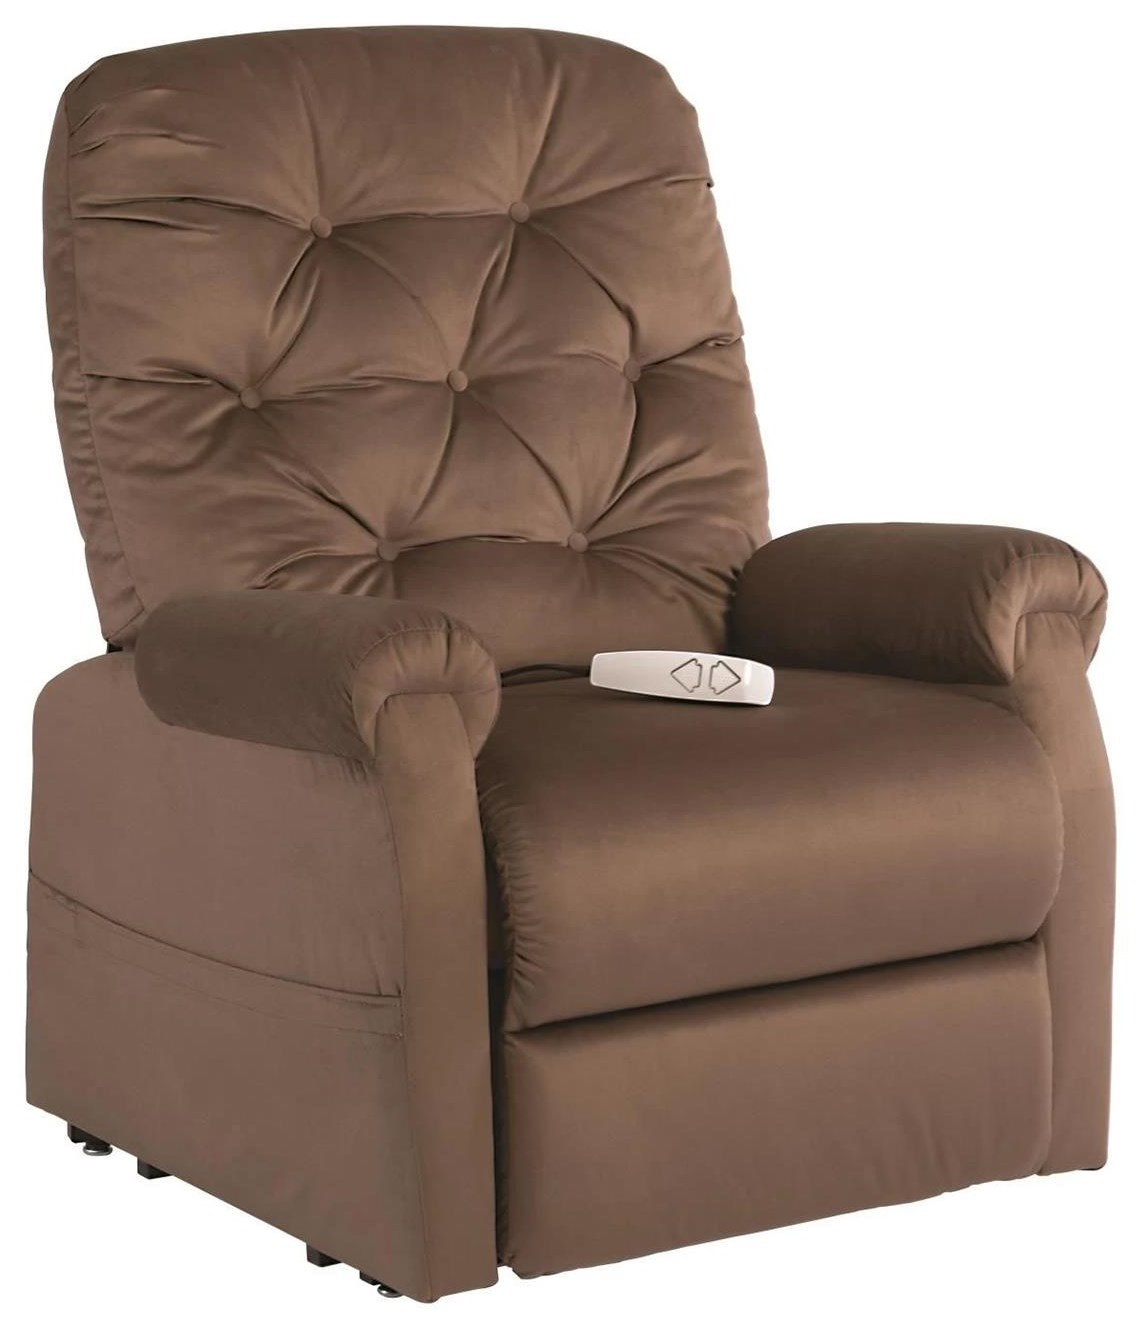 Lift Chairs Power Lift Recliner at Rotmans